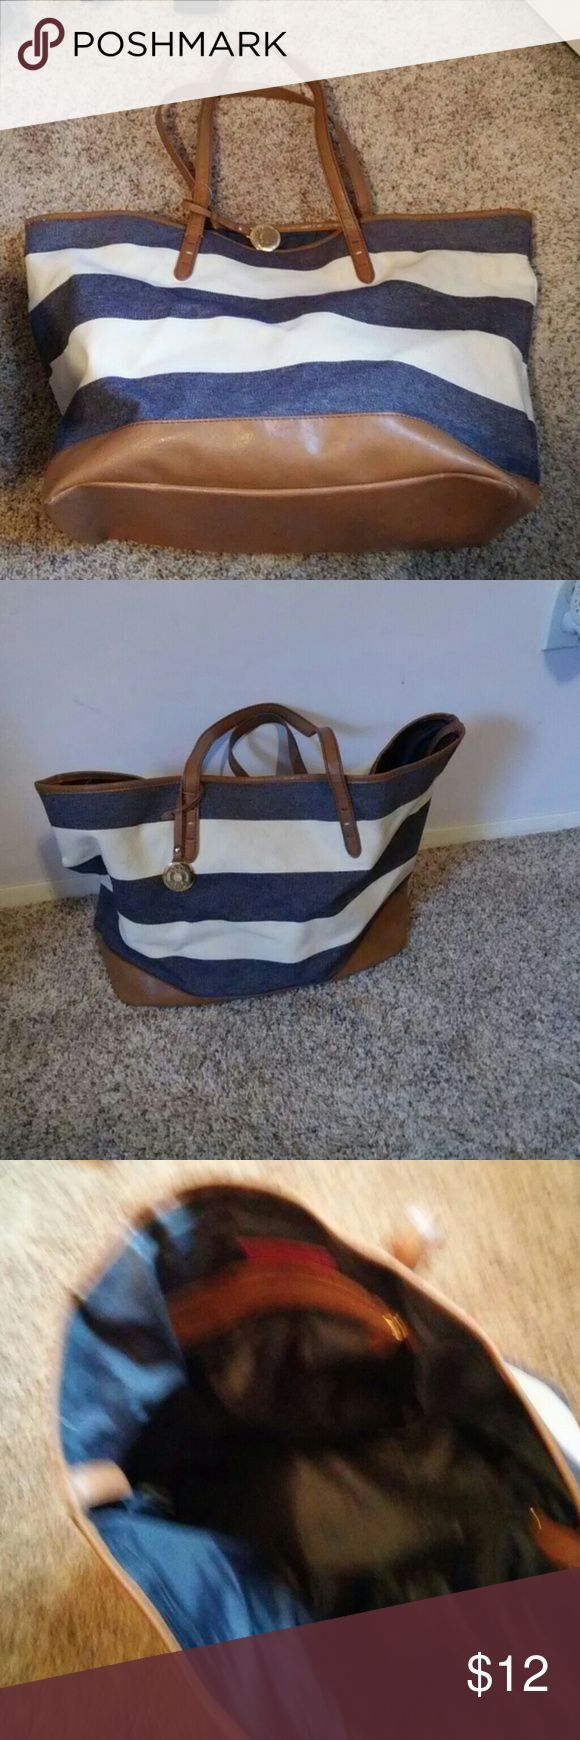 Tommy Hilfiger striped tote bag. Tommy Hilfiger blue and white striped tote bag with brown accents. In great condition. Tommy Hilfiger Bags Totes